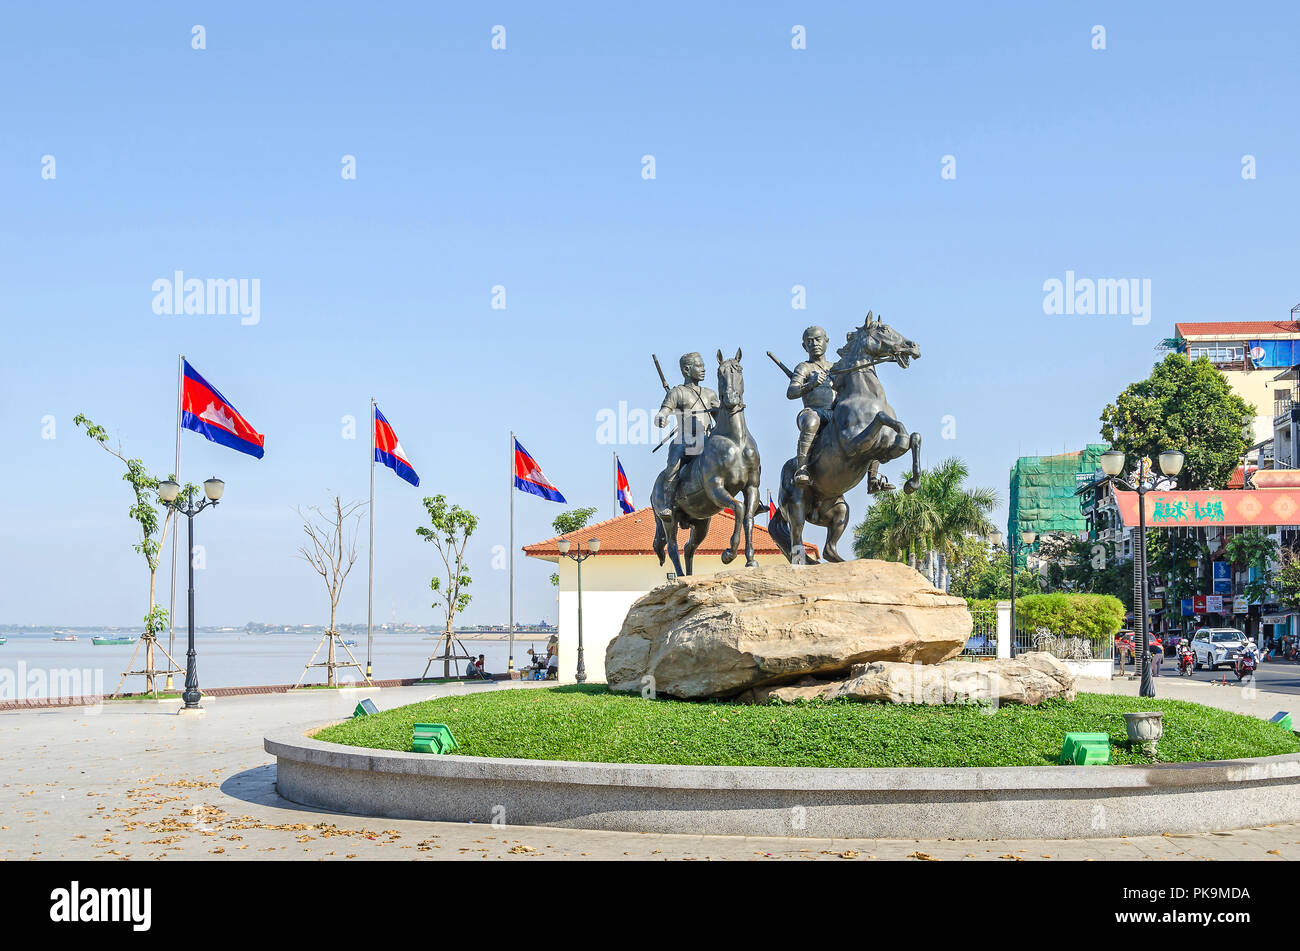 Phnom Penh, Cambodia - April 9, 2018: View of the Preah Sisowath Quay with the horse monument to the warriors Techo Meas and Techo Yot Stock Photo